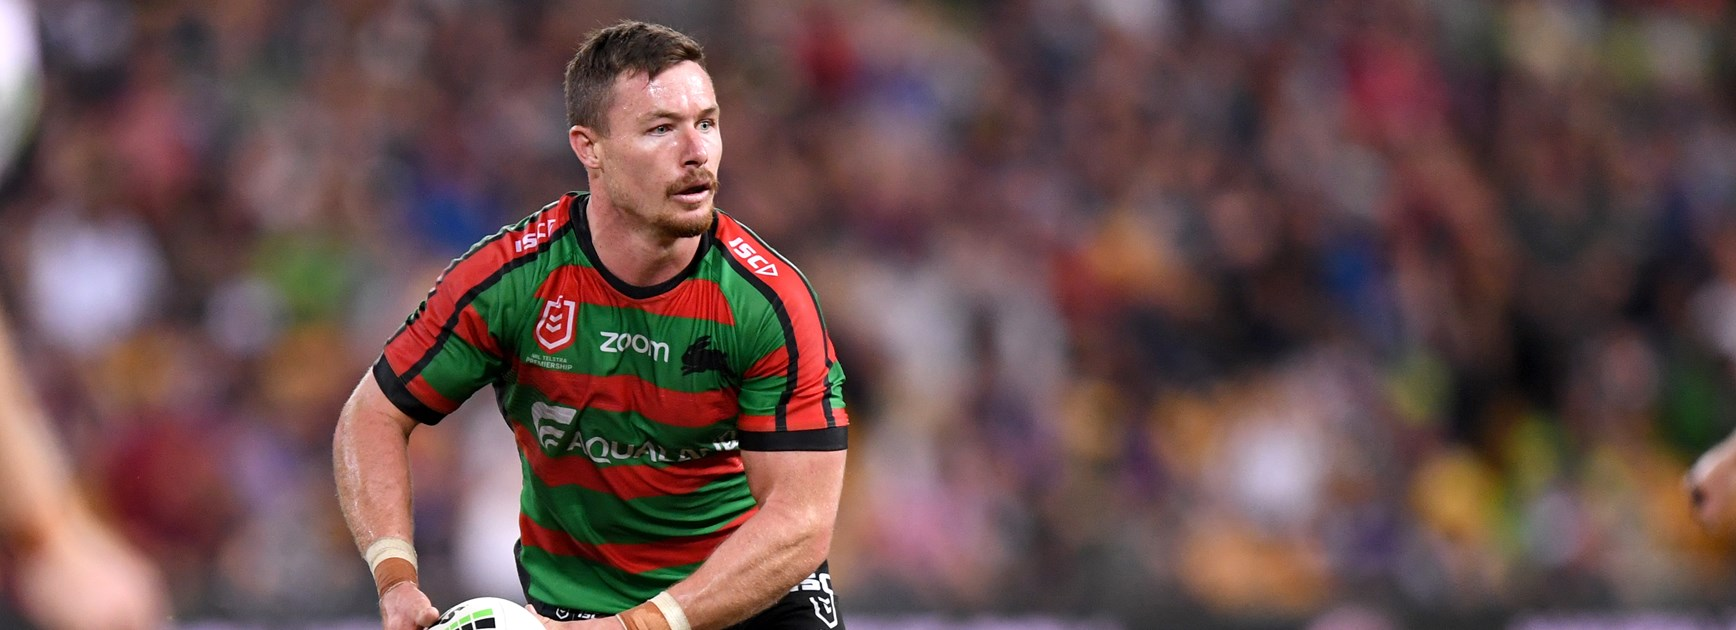 The Opposition: South Sydney Rabbitohs